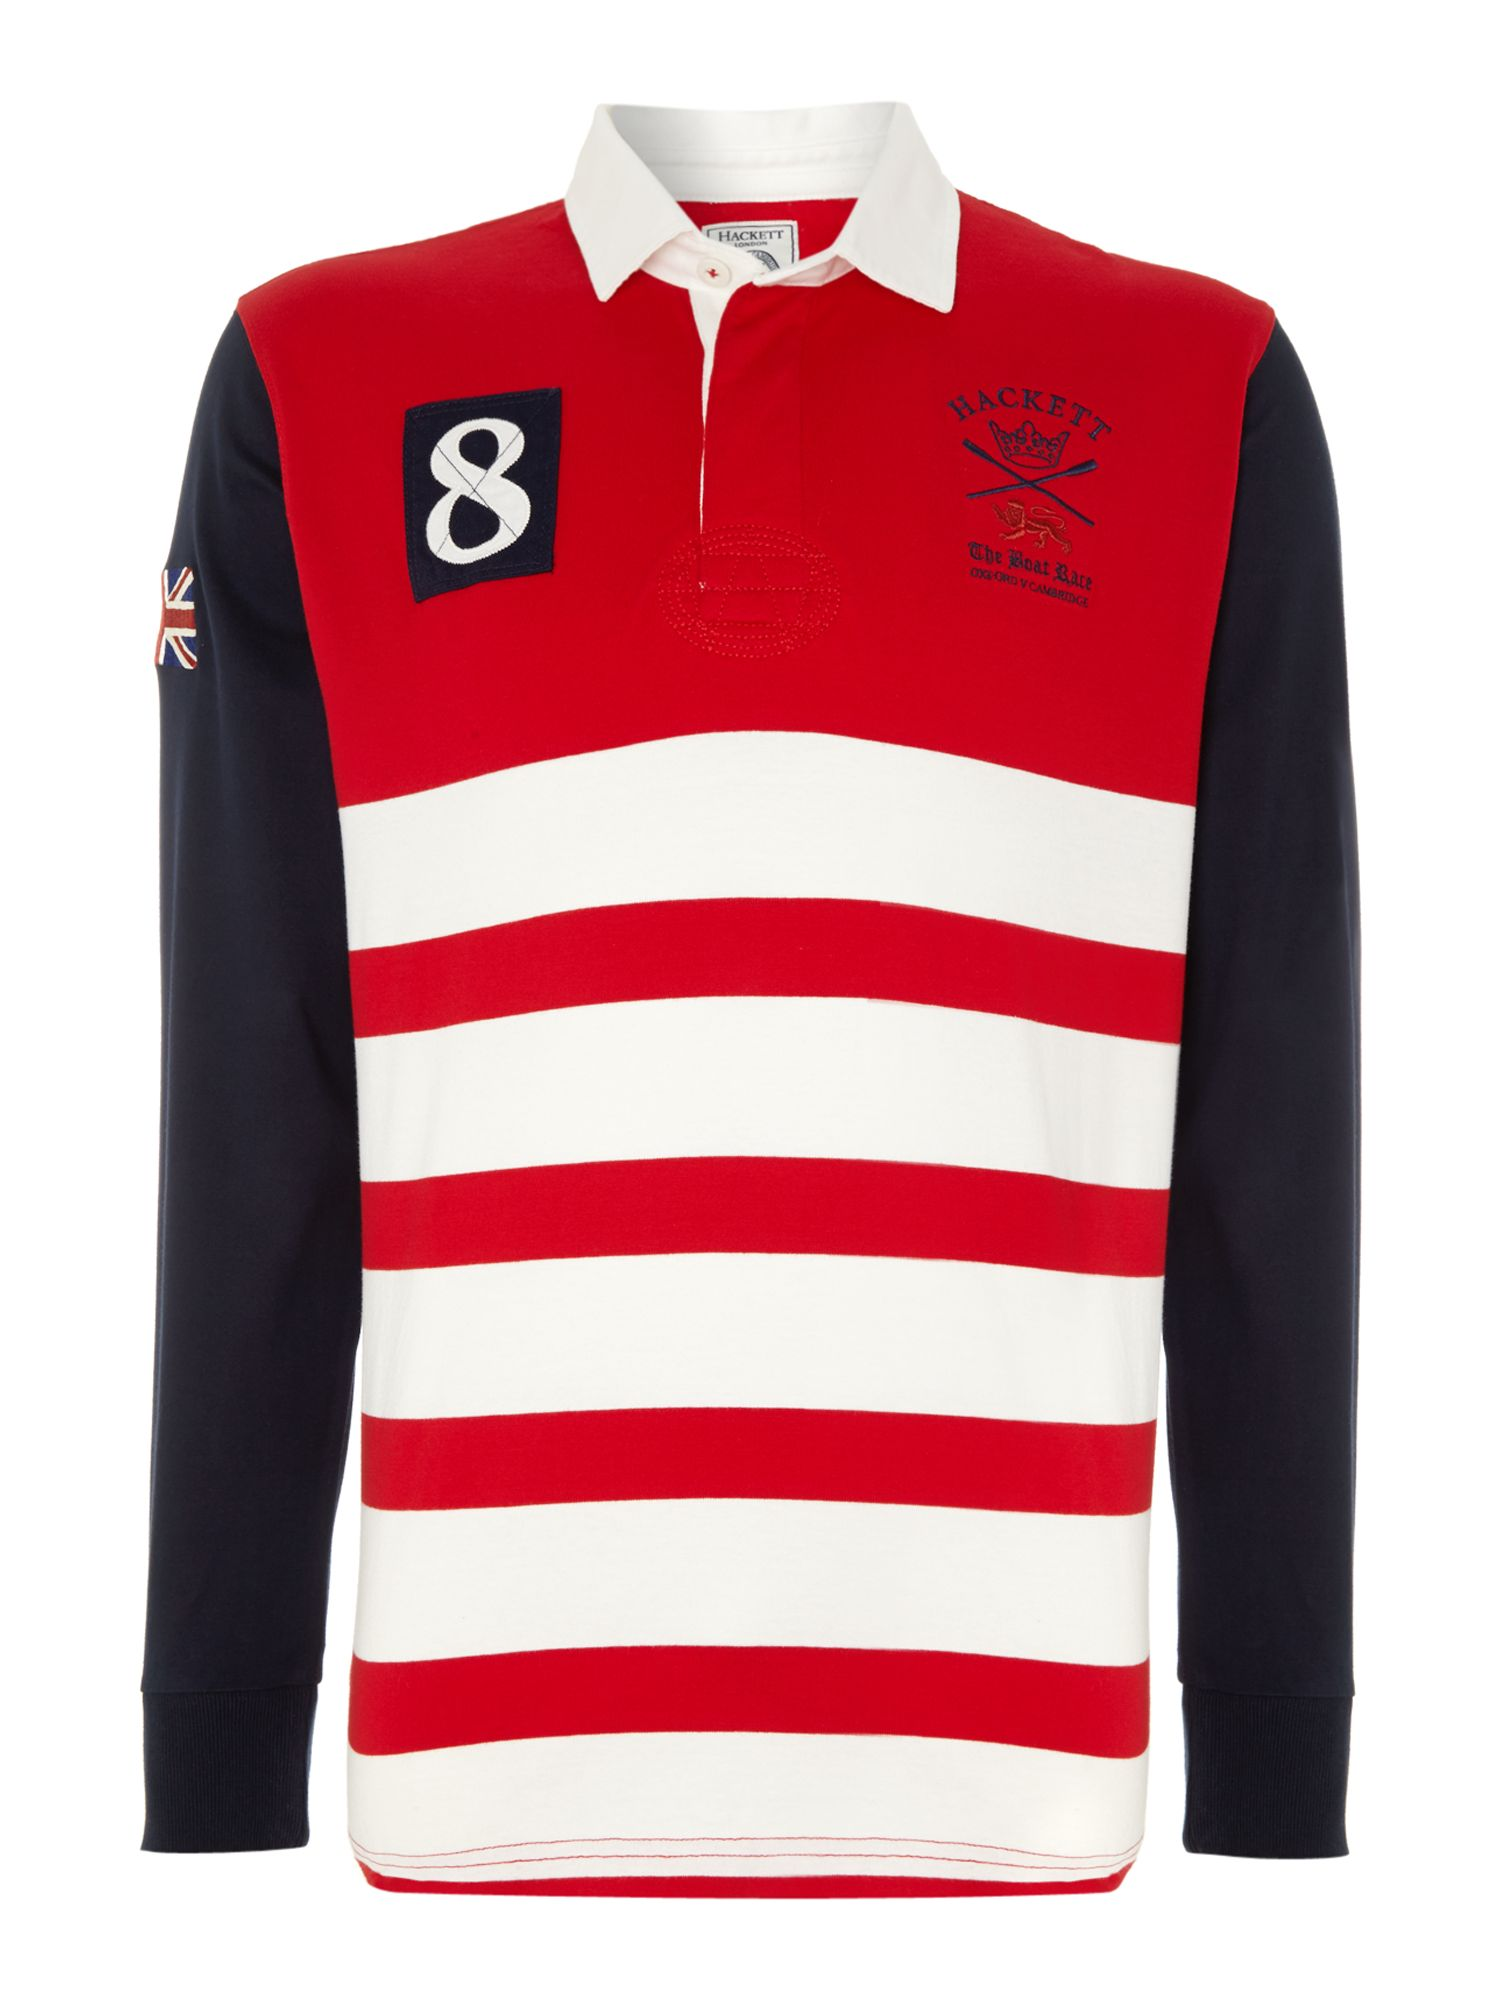 Long sleeve contrast arm rugby shirt